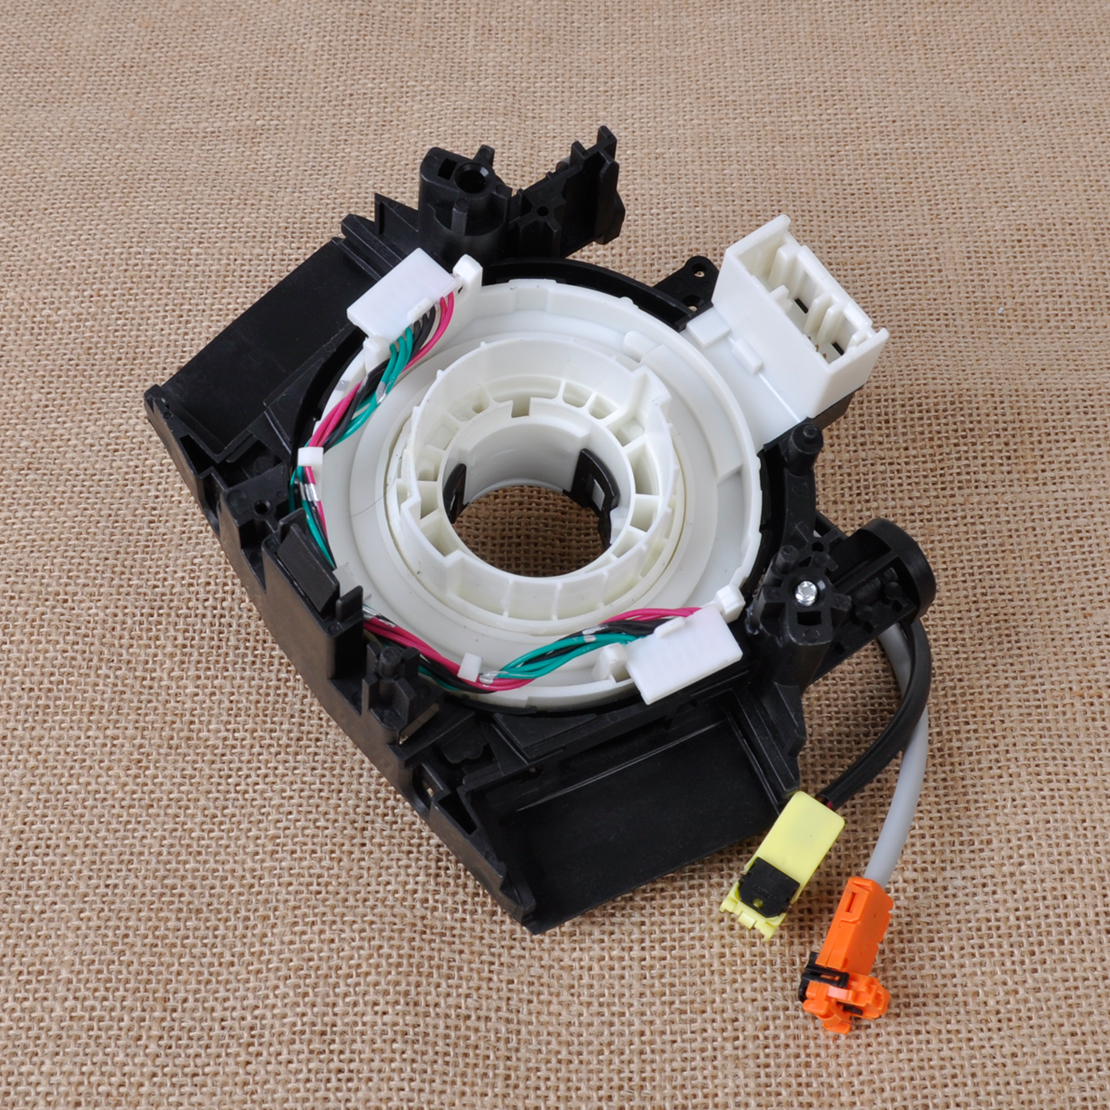 Airbag Spiral Cable Clock Spring For Nissan 350z Versa